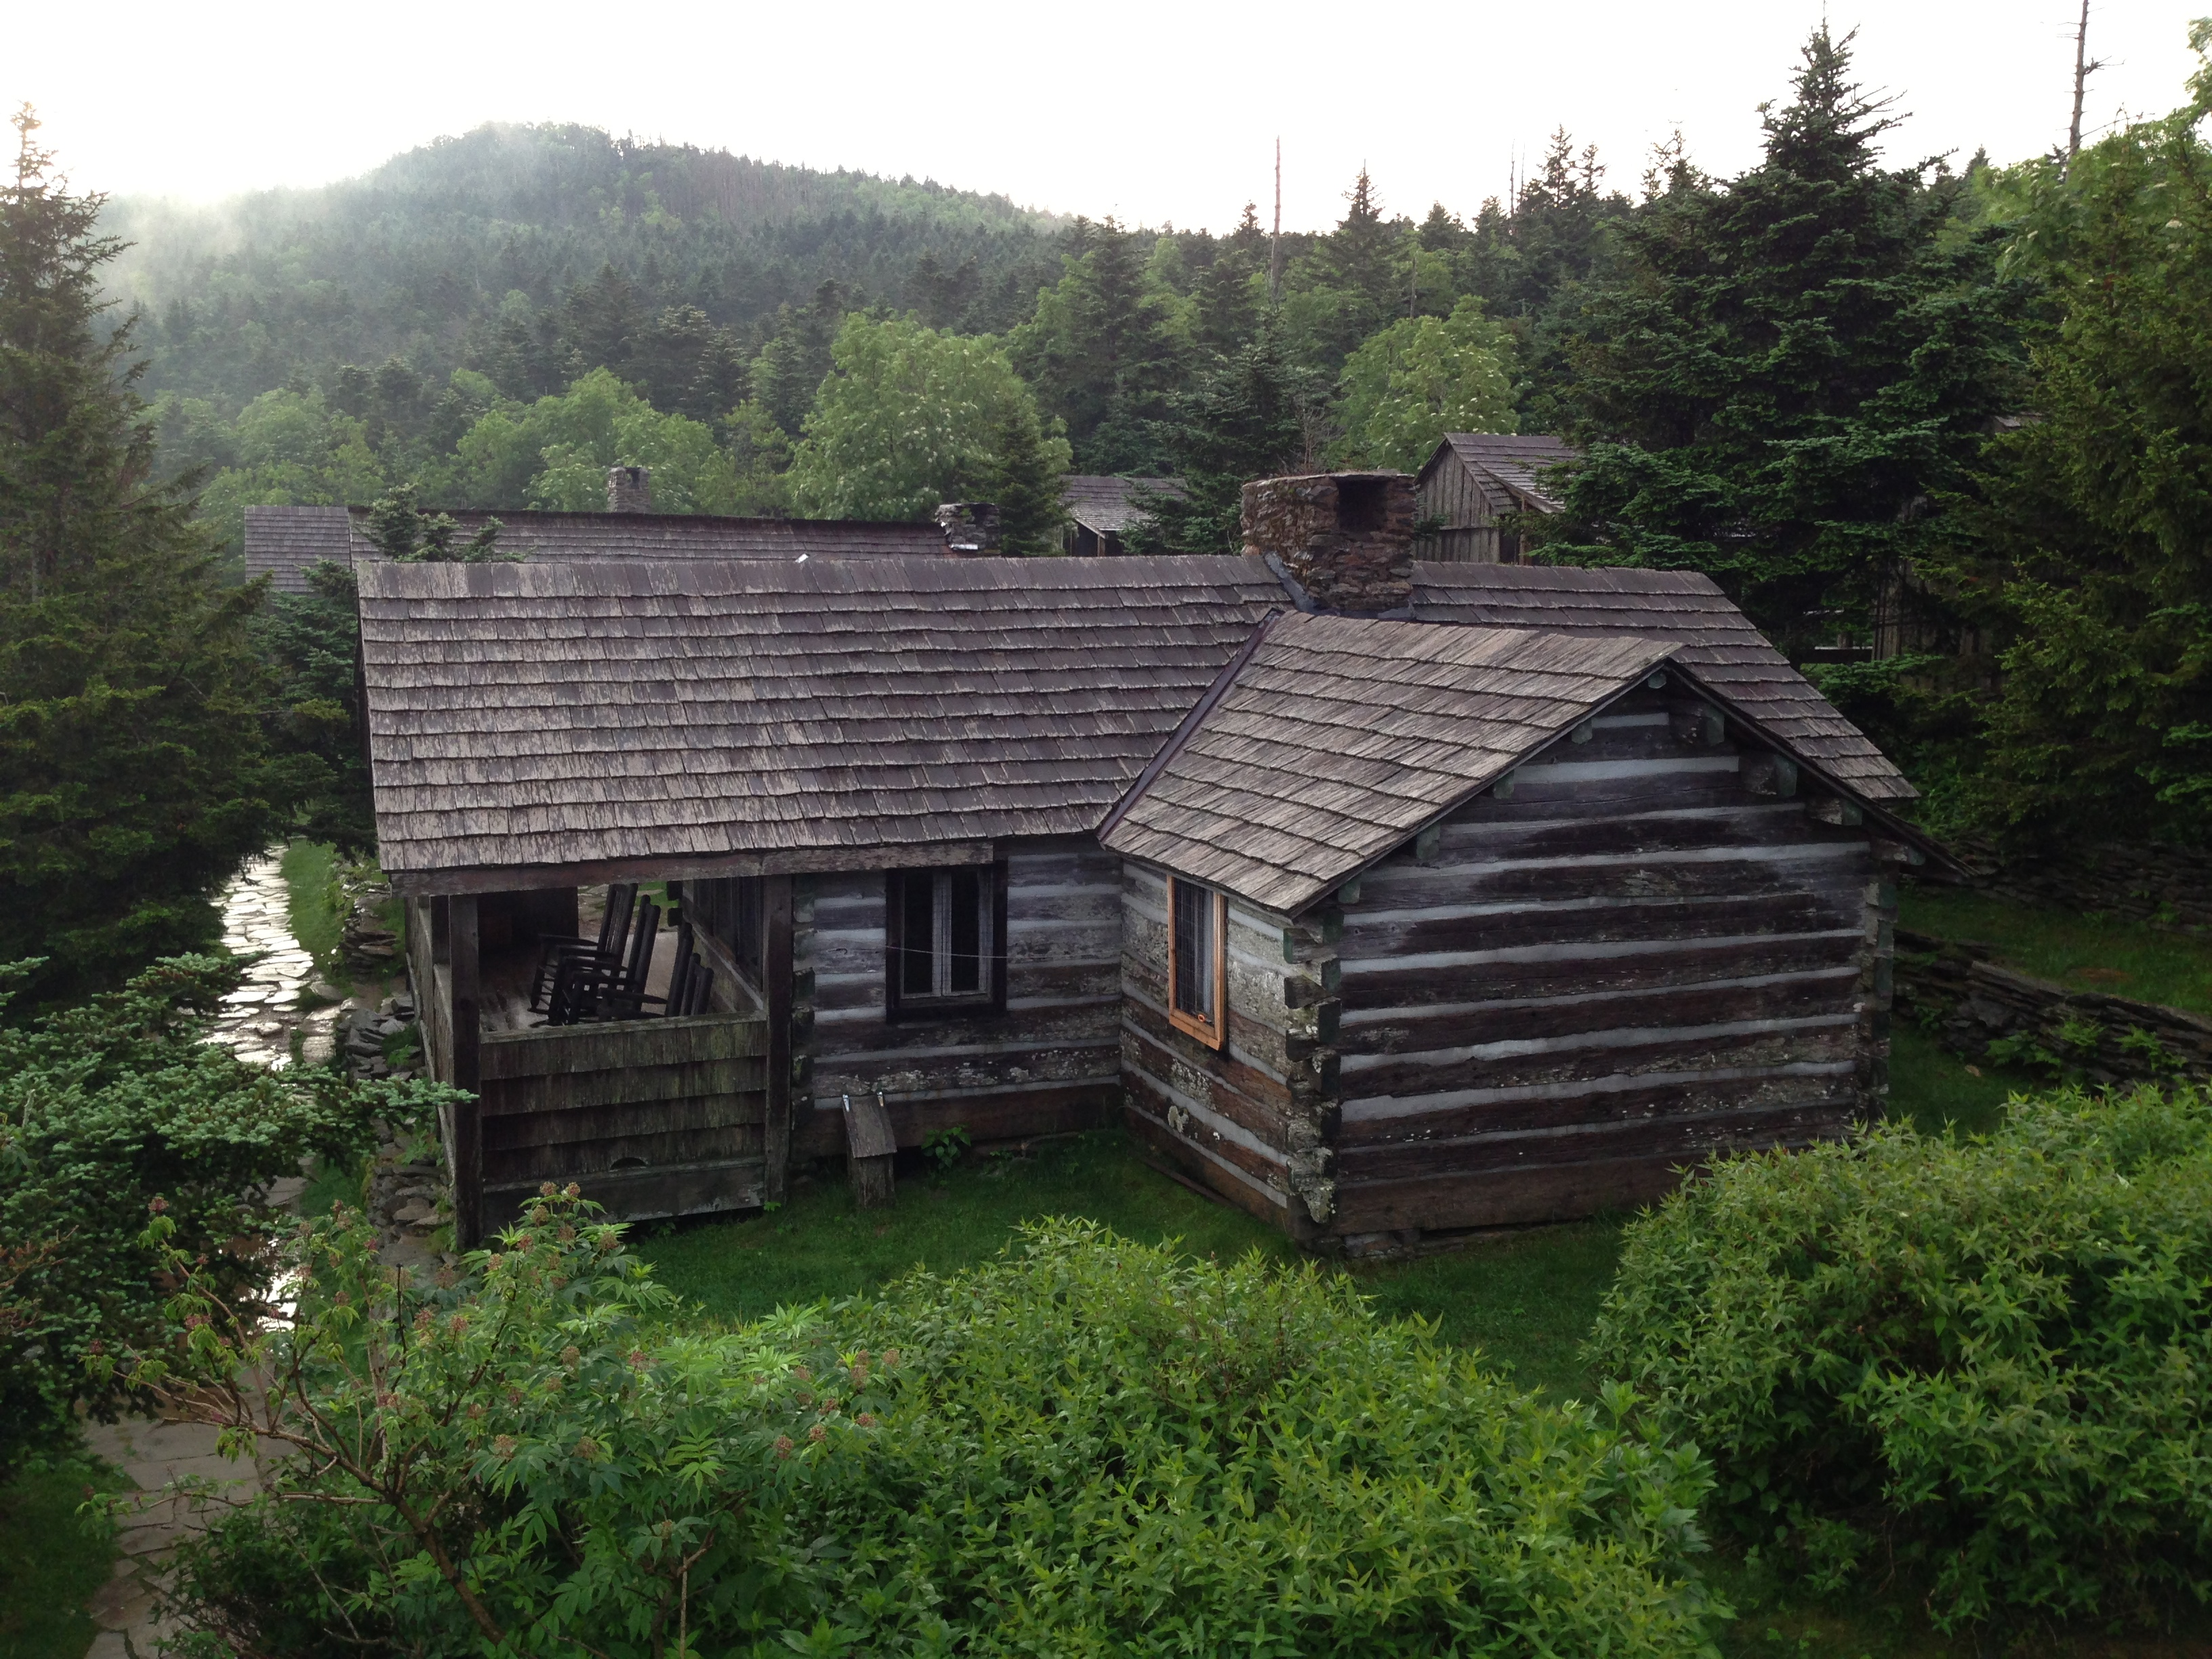 national log ha luxury cabin great area location lovely deal views smoky in bed cabins image gatlinburg home beach the property from park conservation s mountains yards